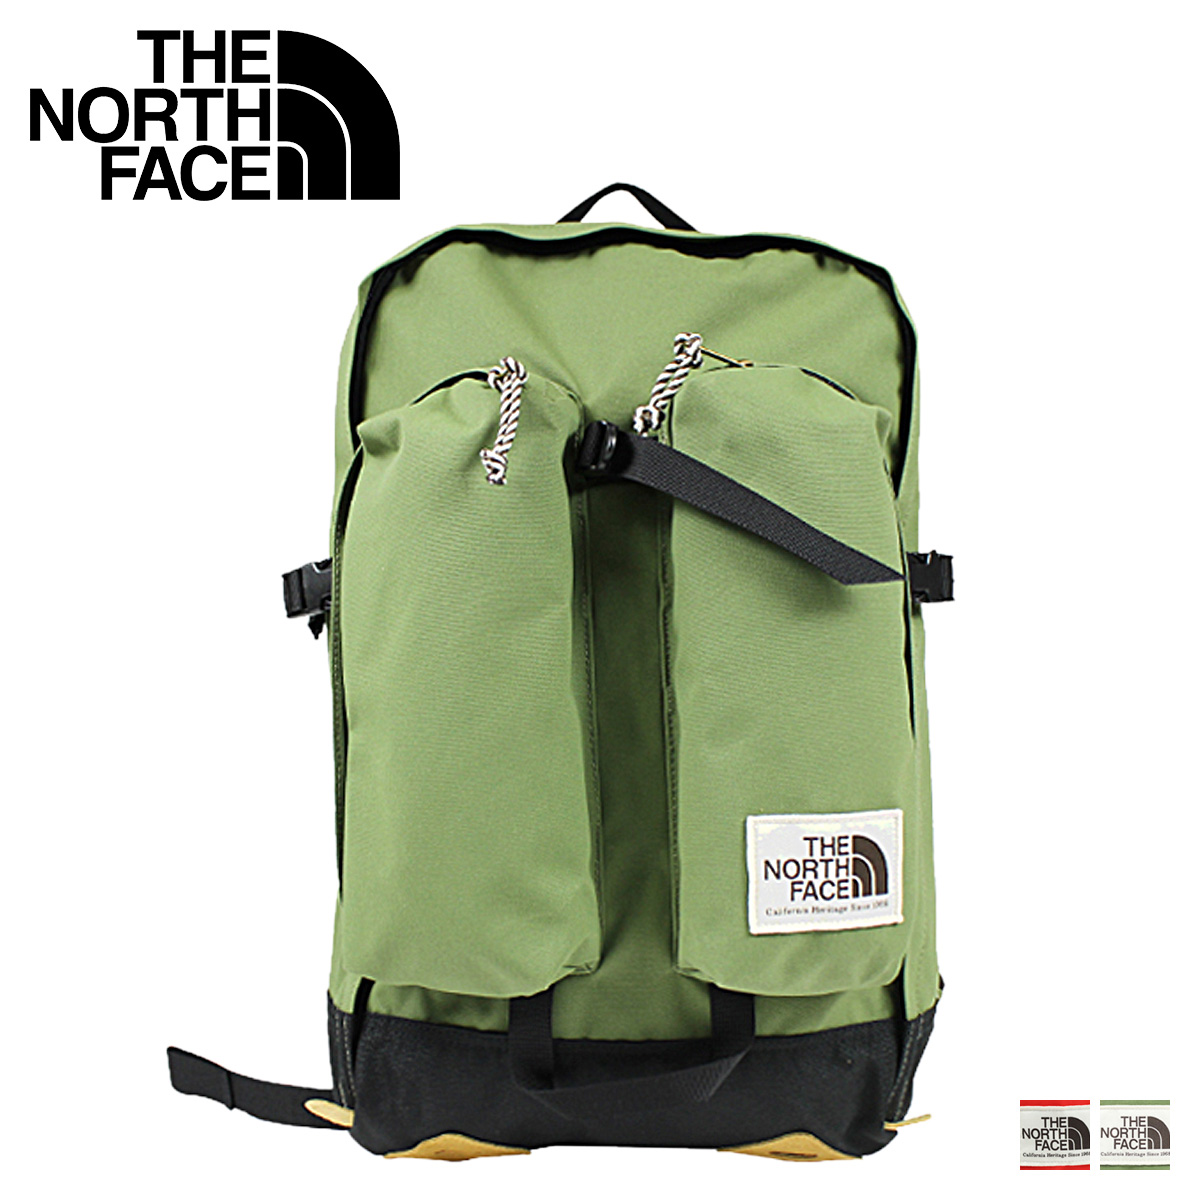 2db3040656a5 The north face THE NORTH FACE backpack daypack mens Luc 2014 years new C085  2 color CREVASSE BACKPACK [11 / 28 new in stock] [regular]